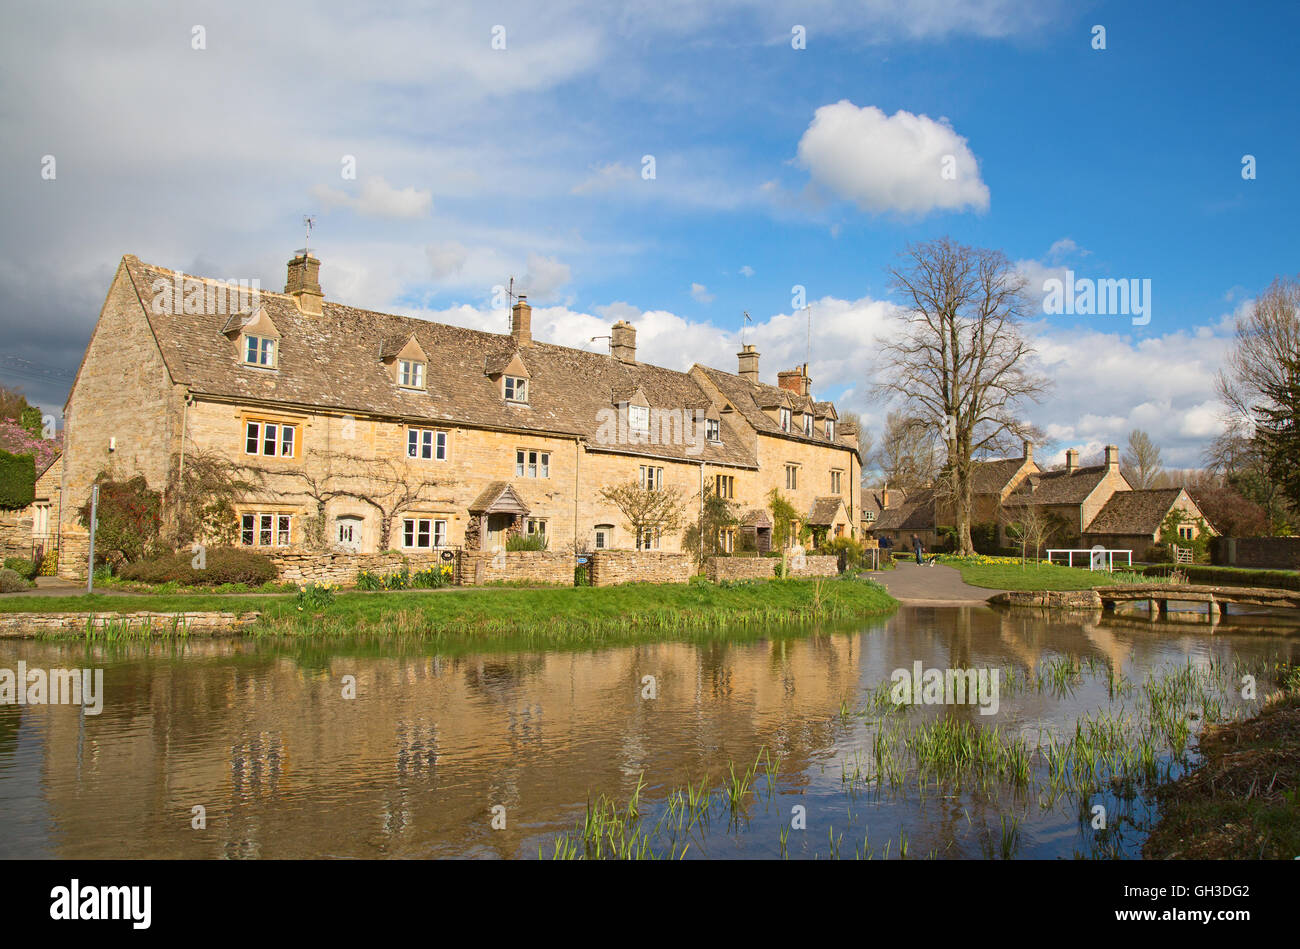 """Ancient village """"Lower Slaughter"""" in the Cotswolds region Stock Photo"""